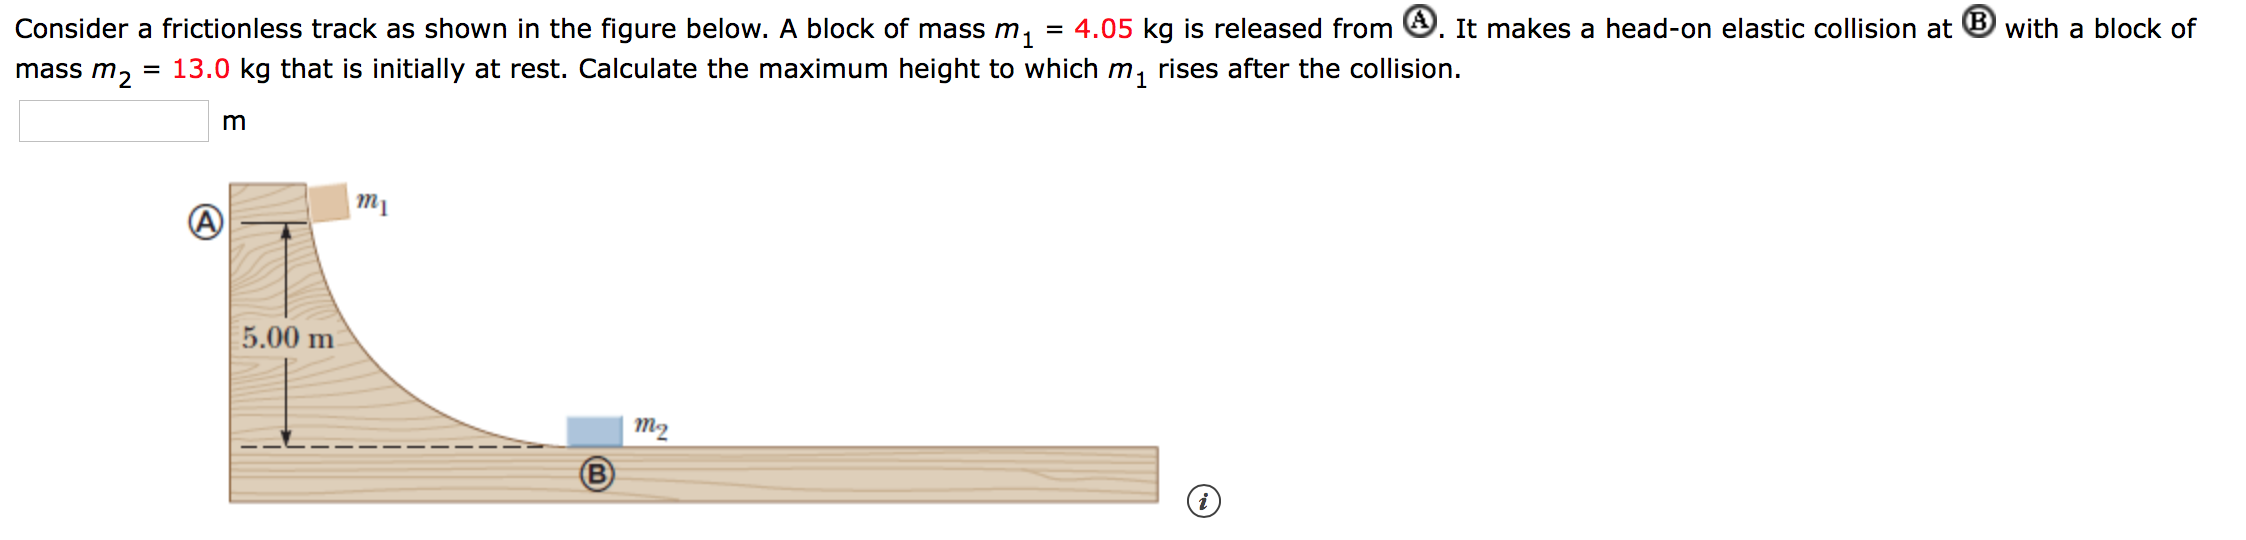 = 4.05 kq is released from . It makes a head-on elastic collision at B with a block of Consider a frictionless track as shown in the figure below. A block of mass m 13.0 kg that is initially at rest. Calculate the maximum height to which m, rises after the collision mass m2 m тy 5.00 m т2 B